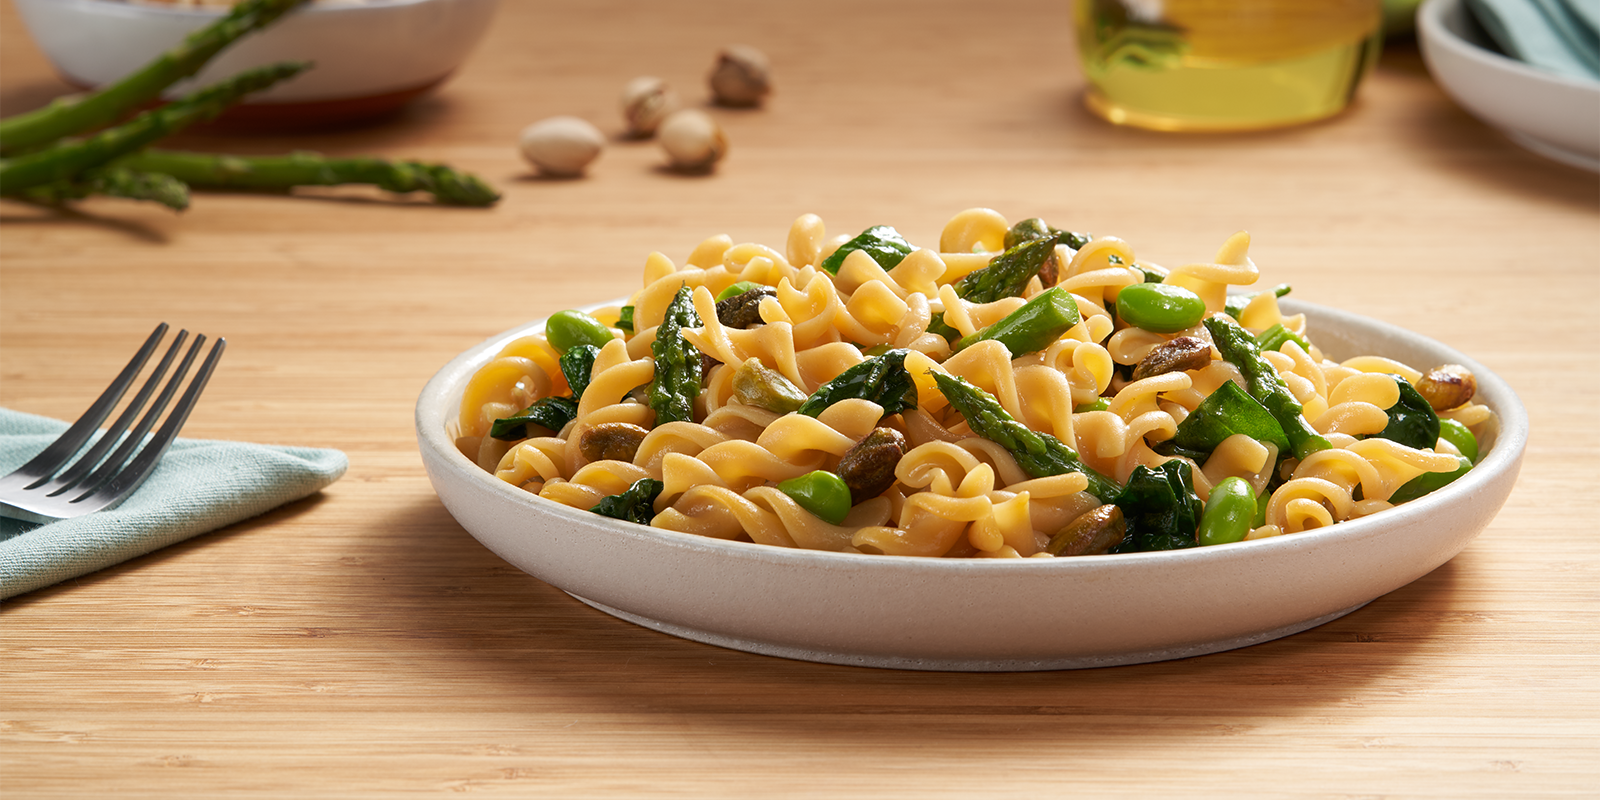 A bowl of ZENB Rotini Pasta with asparagus, mushrooms and peas